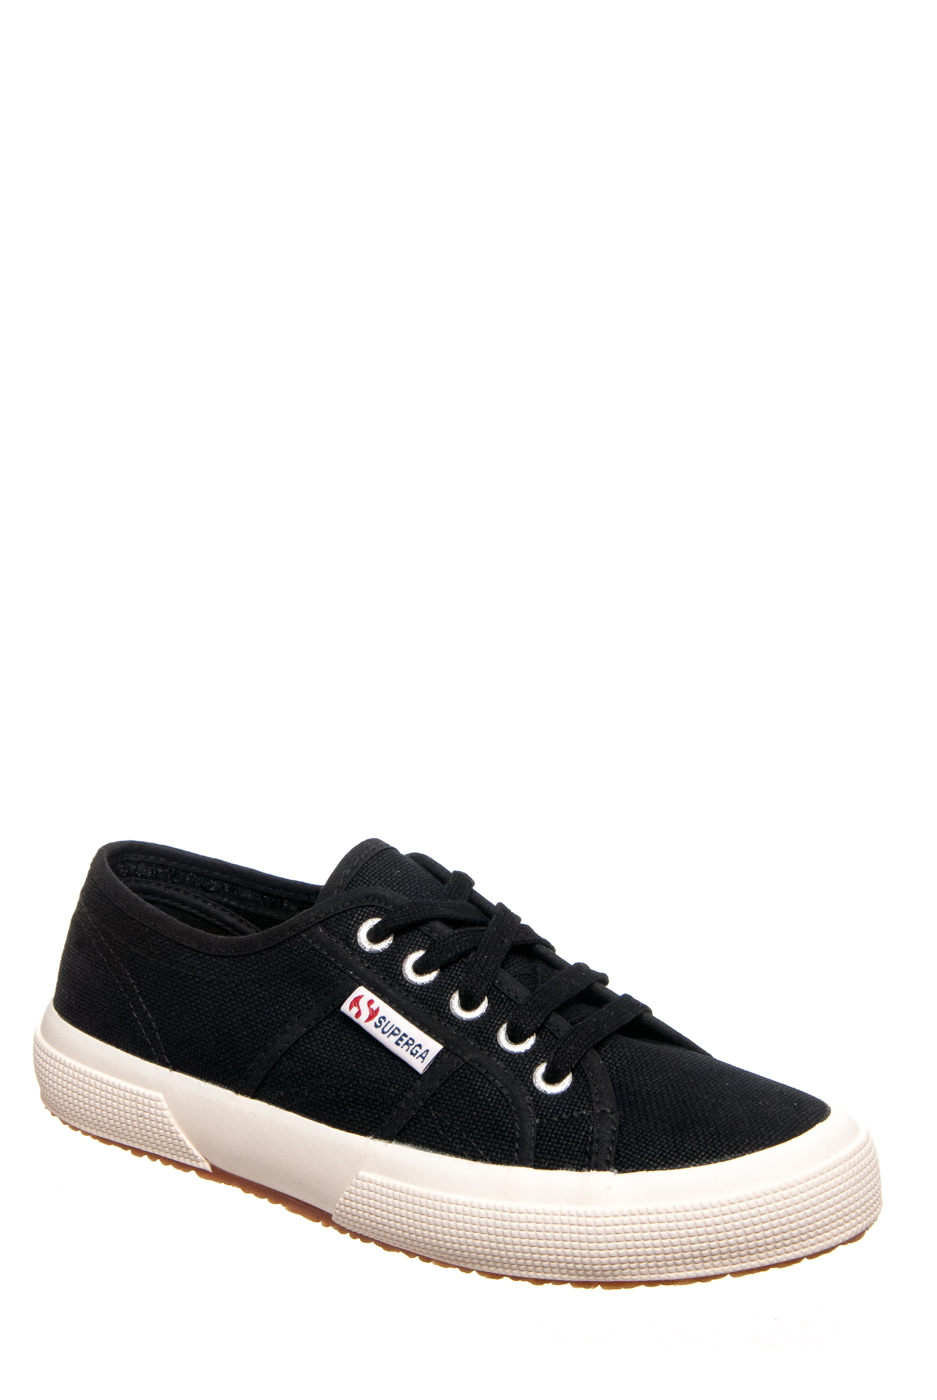 SUPERGA 2750 Cotu Classic Low Top Sneakers - Black